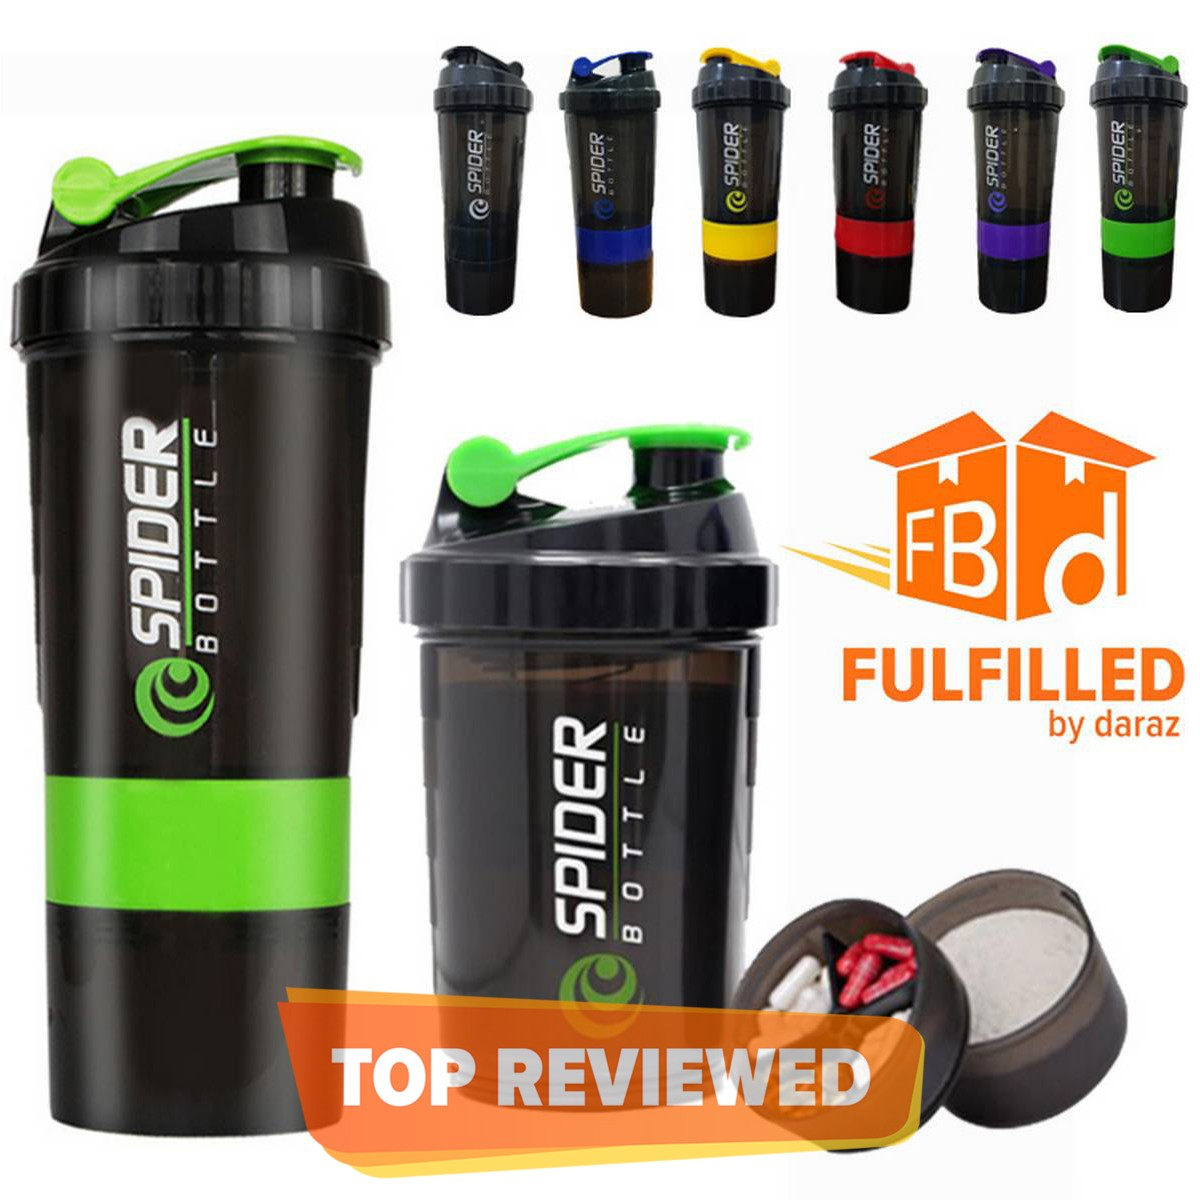 3-in-1 Spider  Protein Shaker Bottle Sports Gym Water Bottle Multi-Purpose Shaker with Extra Supplement and Pill Capsule Storage BPA Free Plastic Easy Grip Leak Proof-500ml